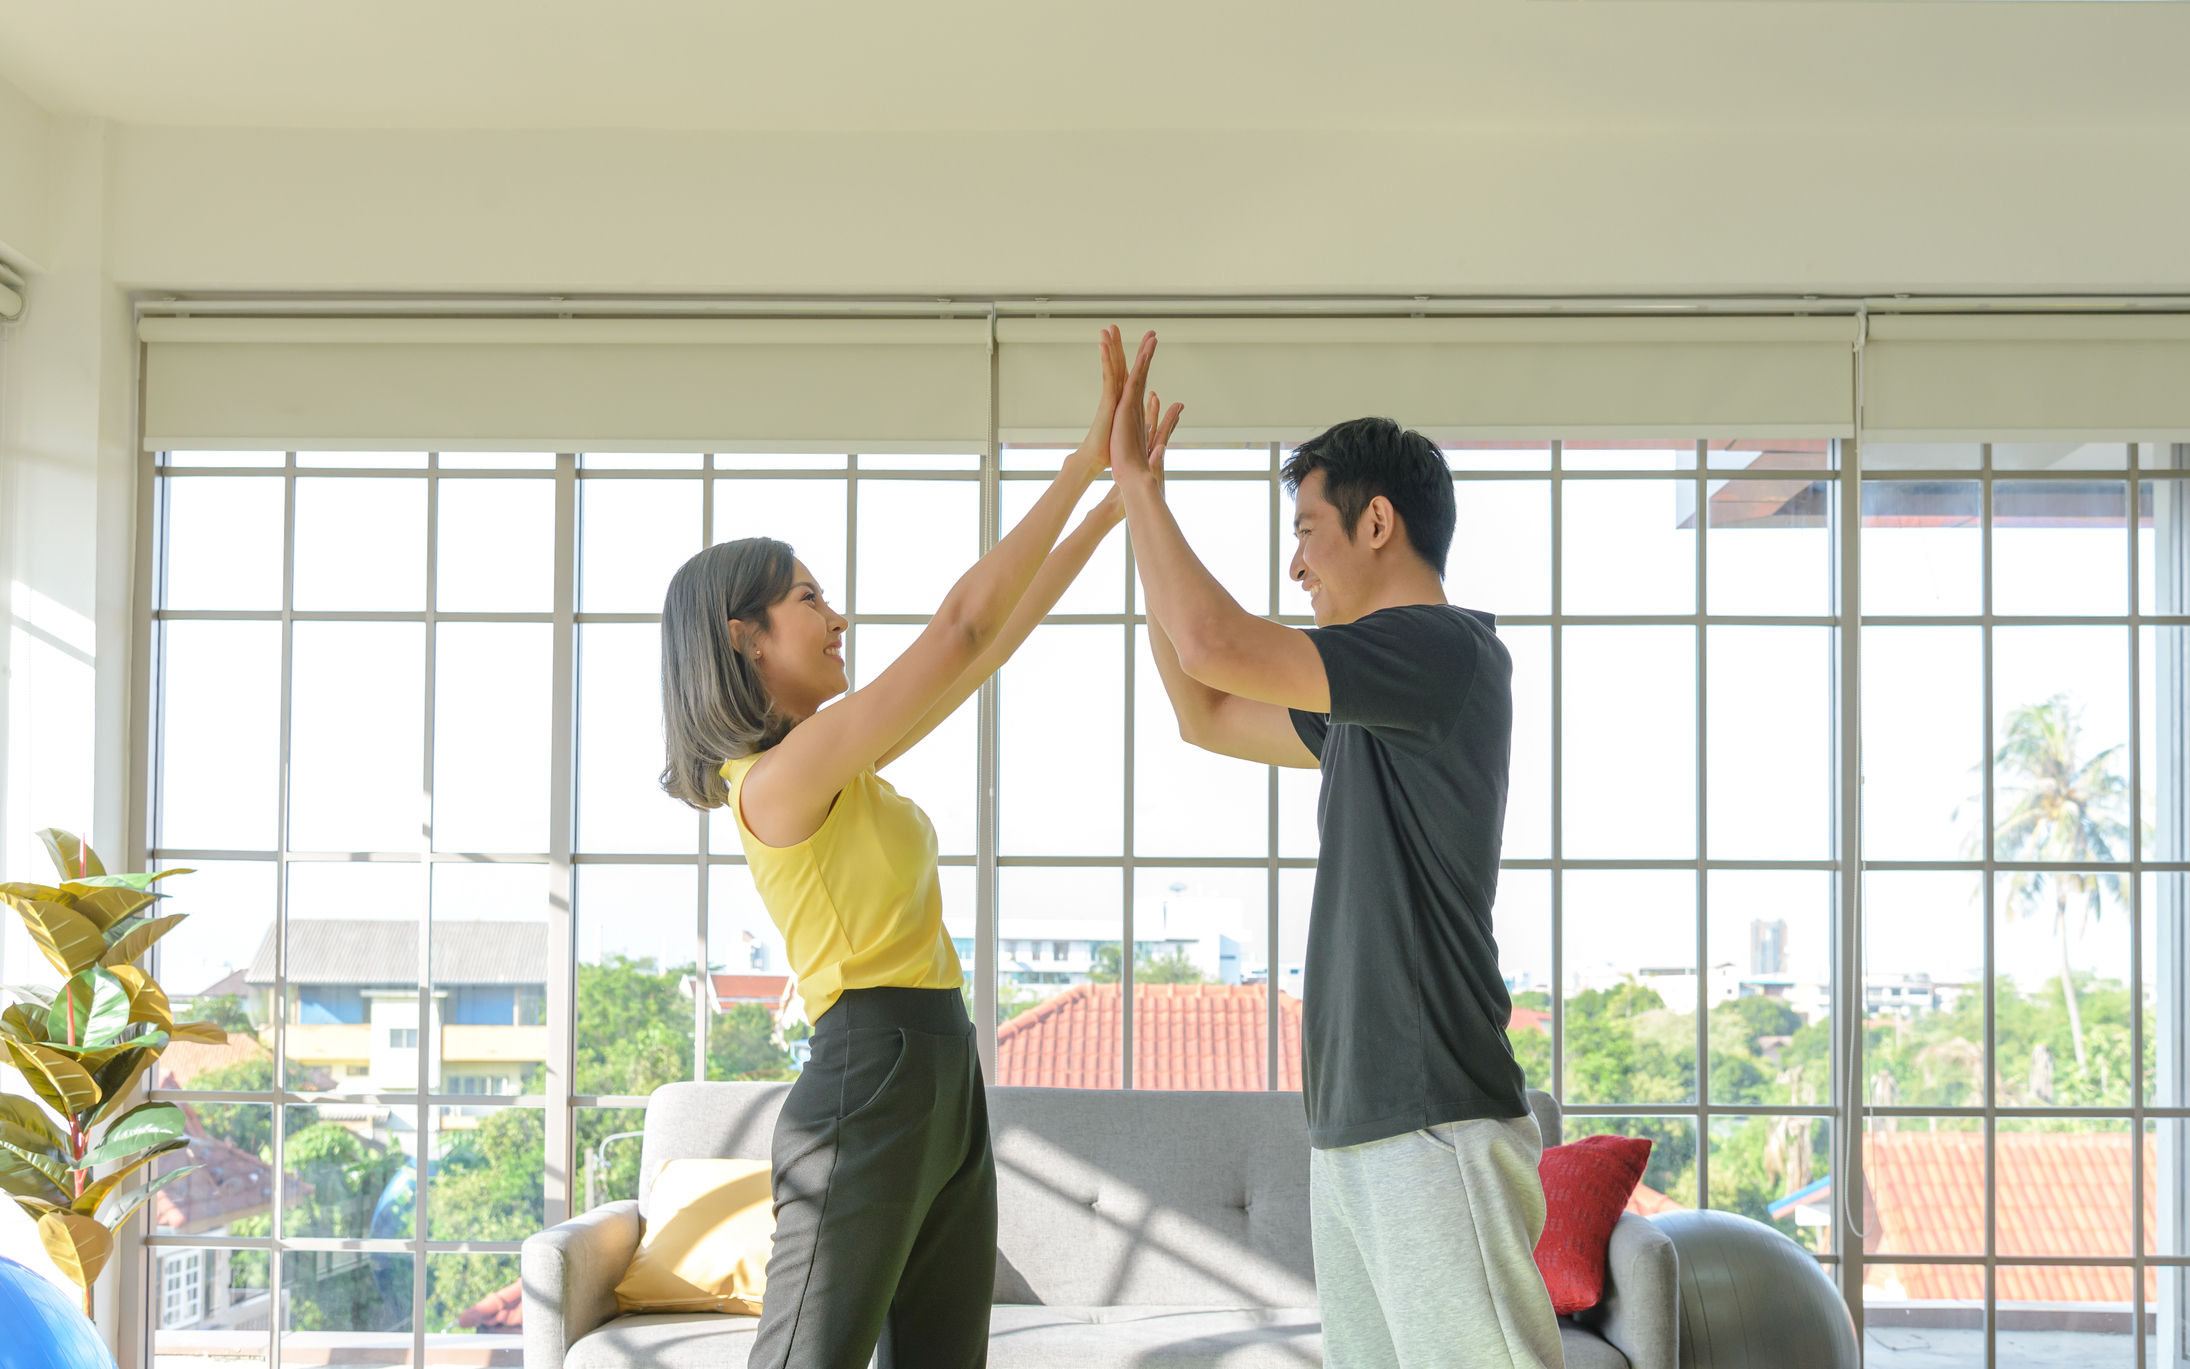 Young asian couple wear casual clothing giving high five to each other and smiling in liveing room. Image credit: Pratchaya, iStock.